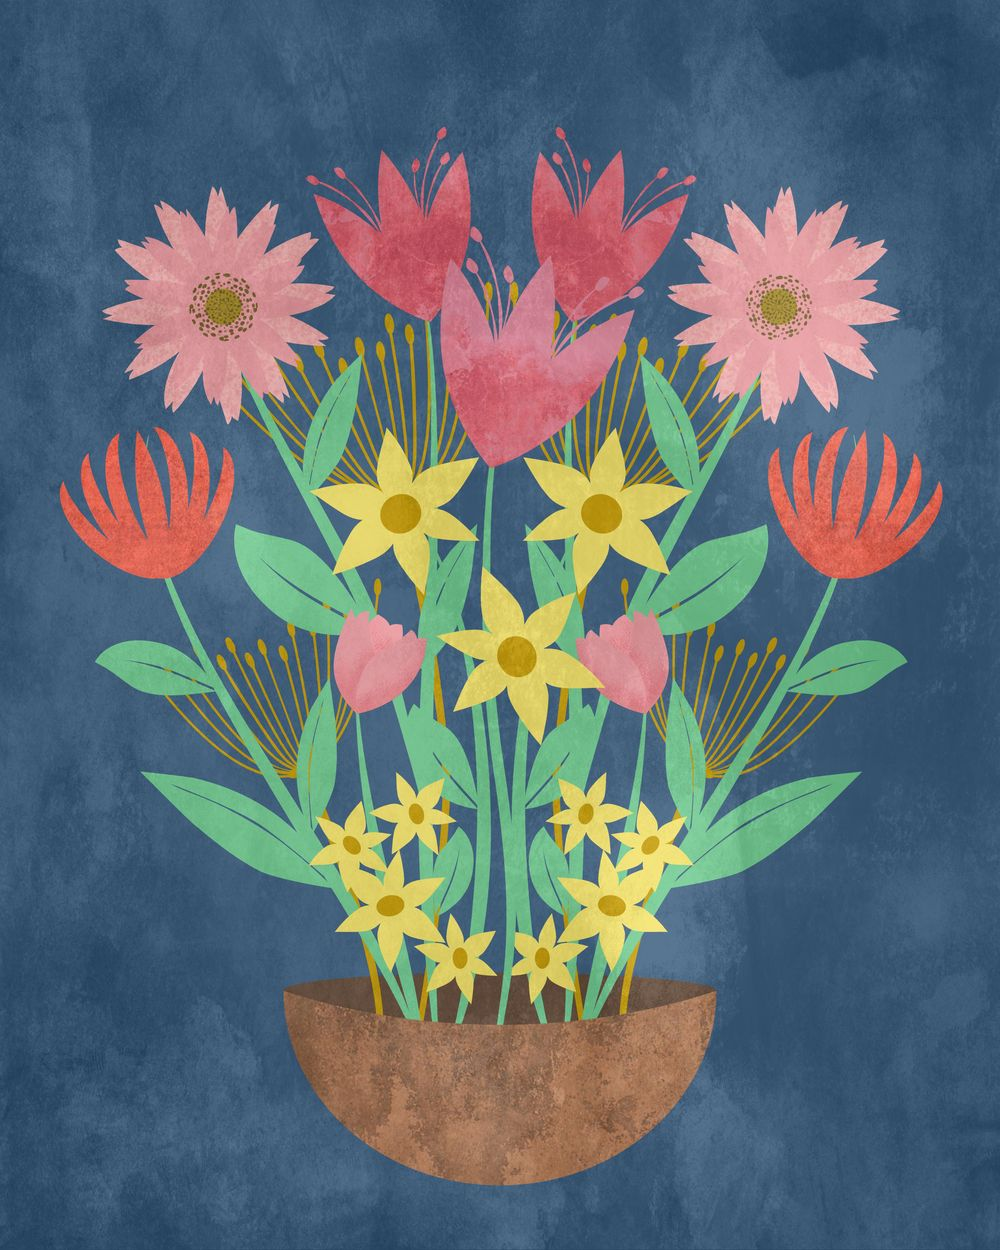 Floral symmetry - image 1 - student project